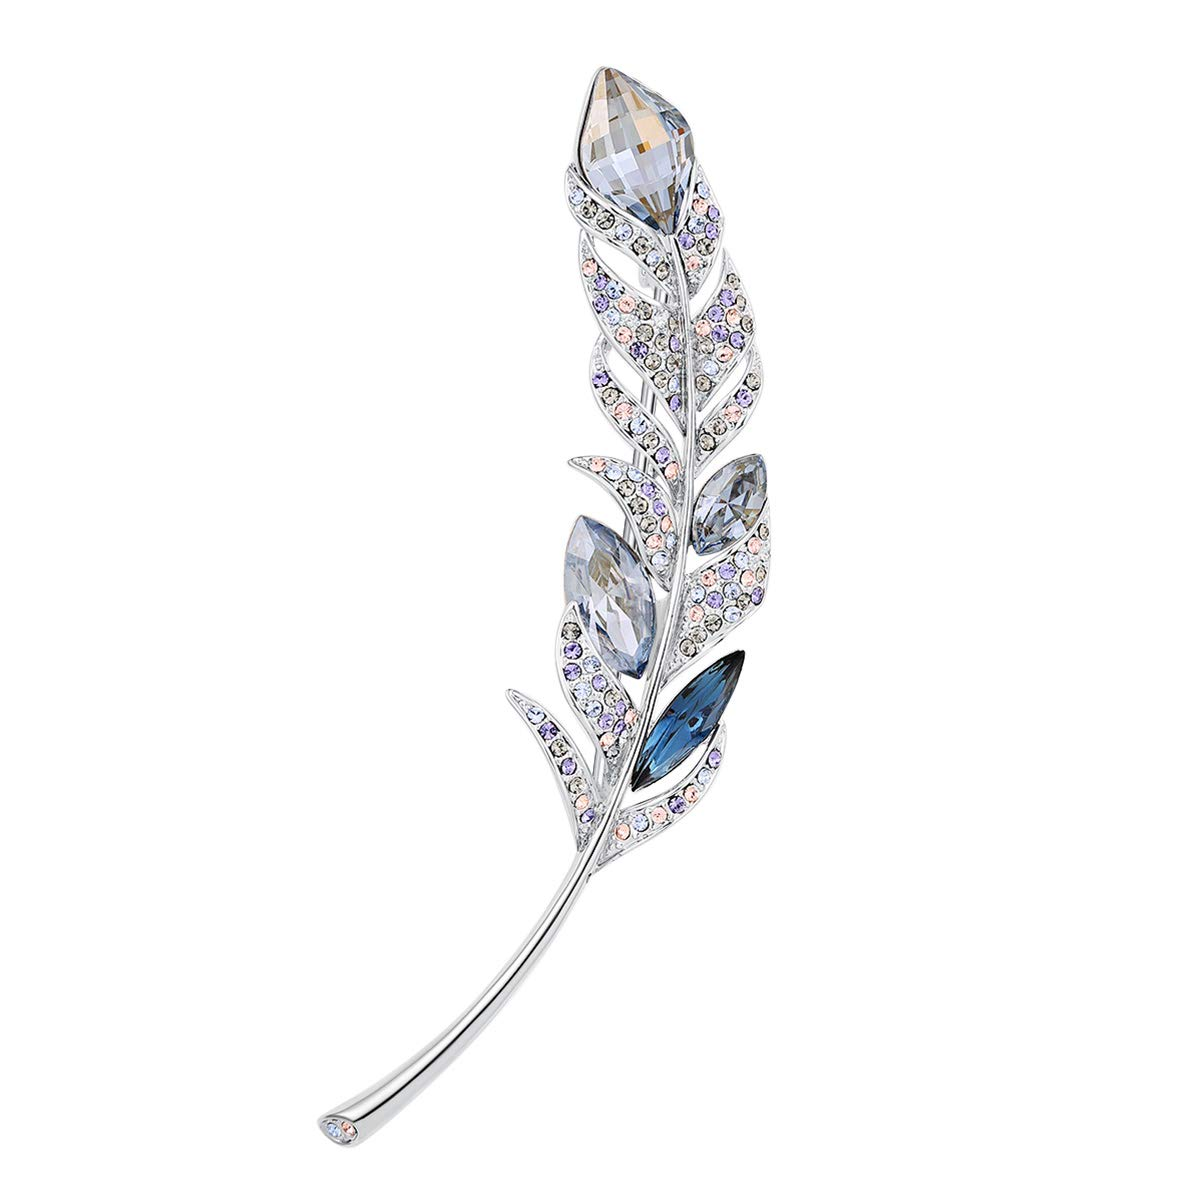 RAINBOW BOX Brooches for Women Fashion,Blue Feather Rhinestone with Swarovski Crystal Jewelry Women's Brooches & Pins